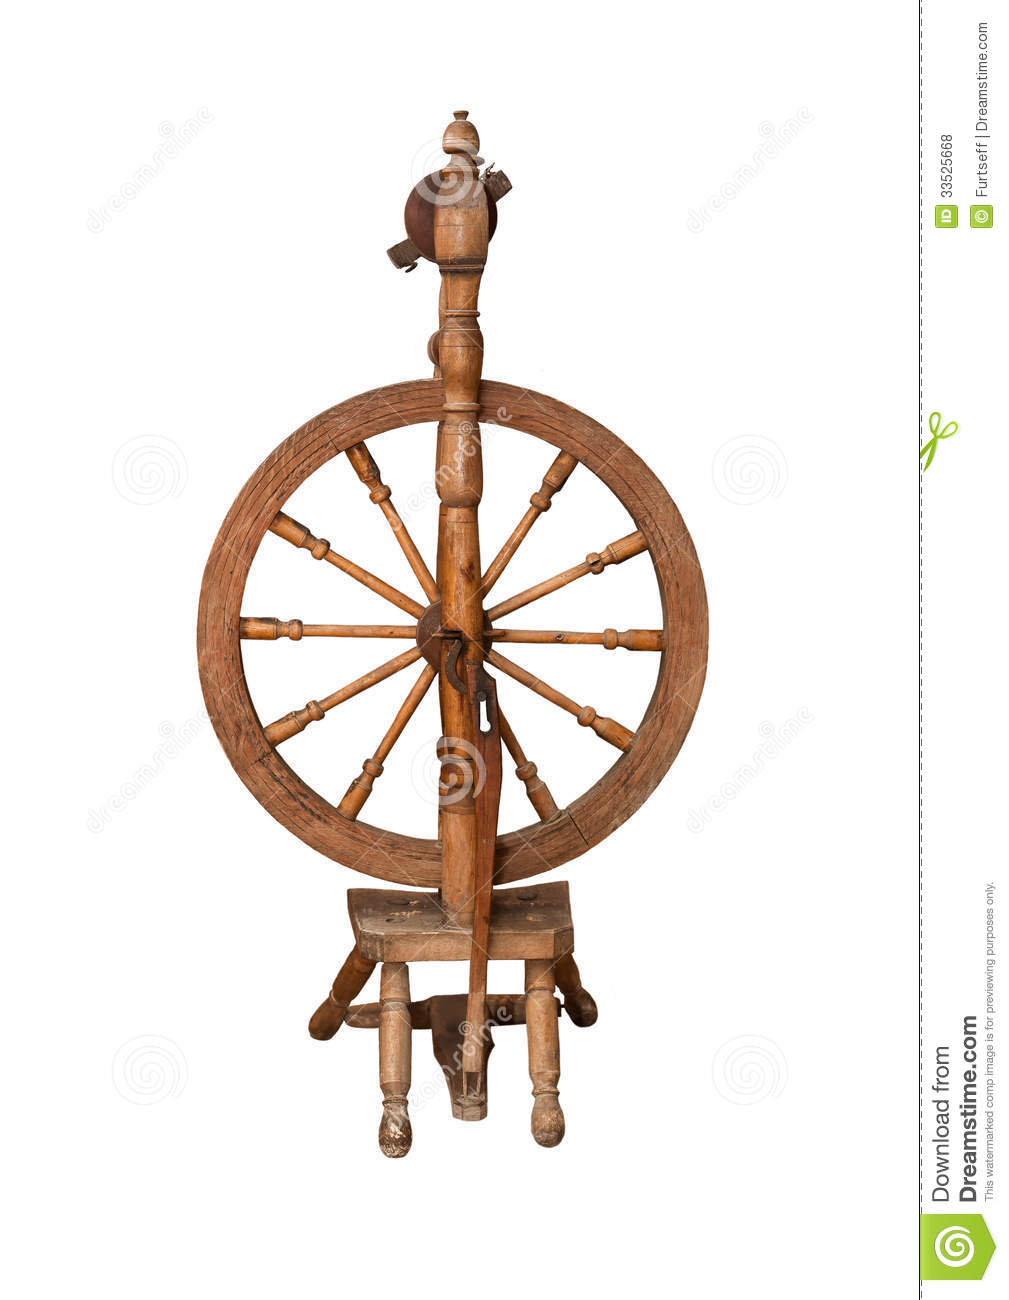 antique spinning wheel royalty free stock photos image. Black Bedroom Furniture Sets. Home Design Ideas